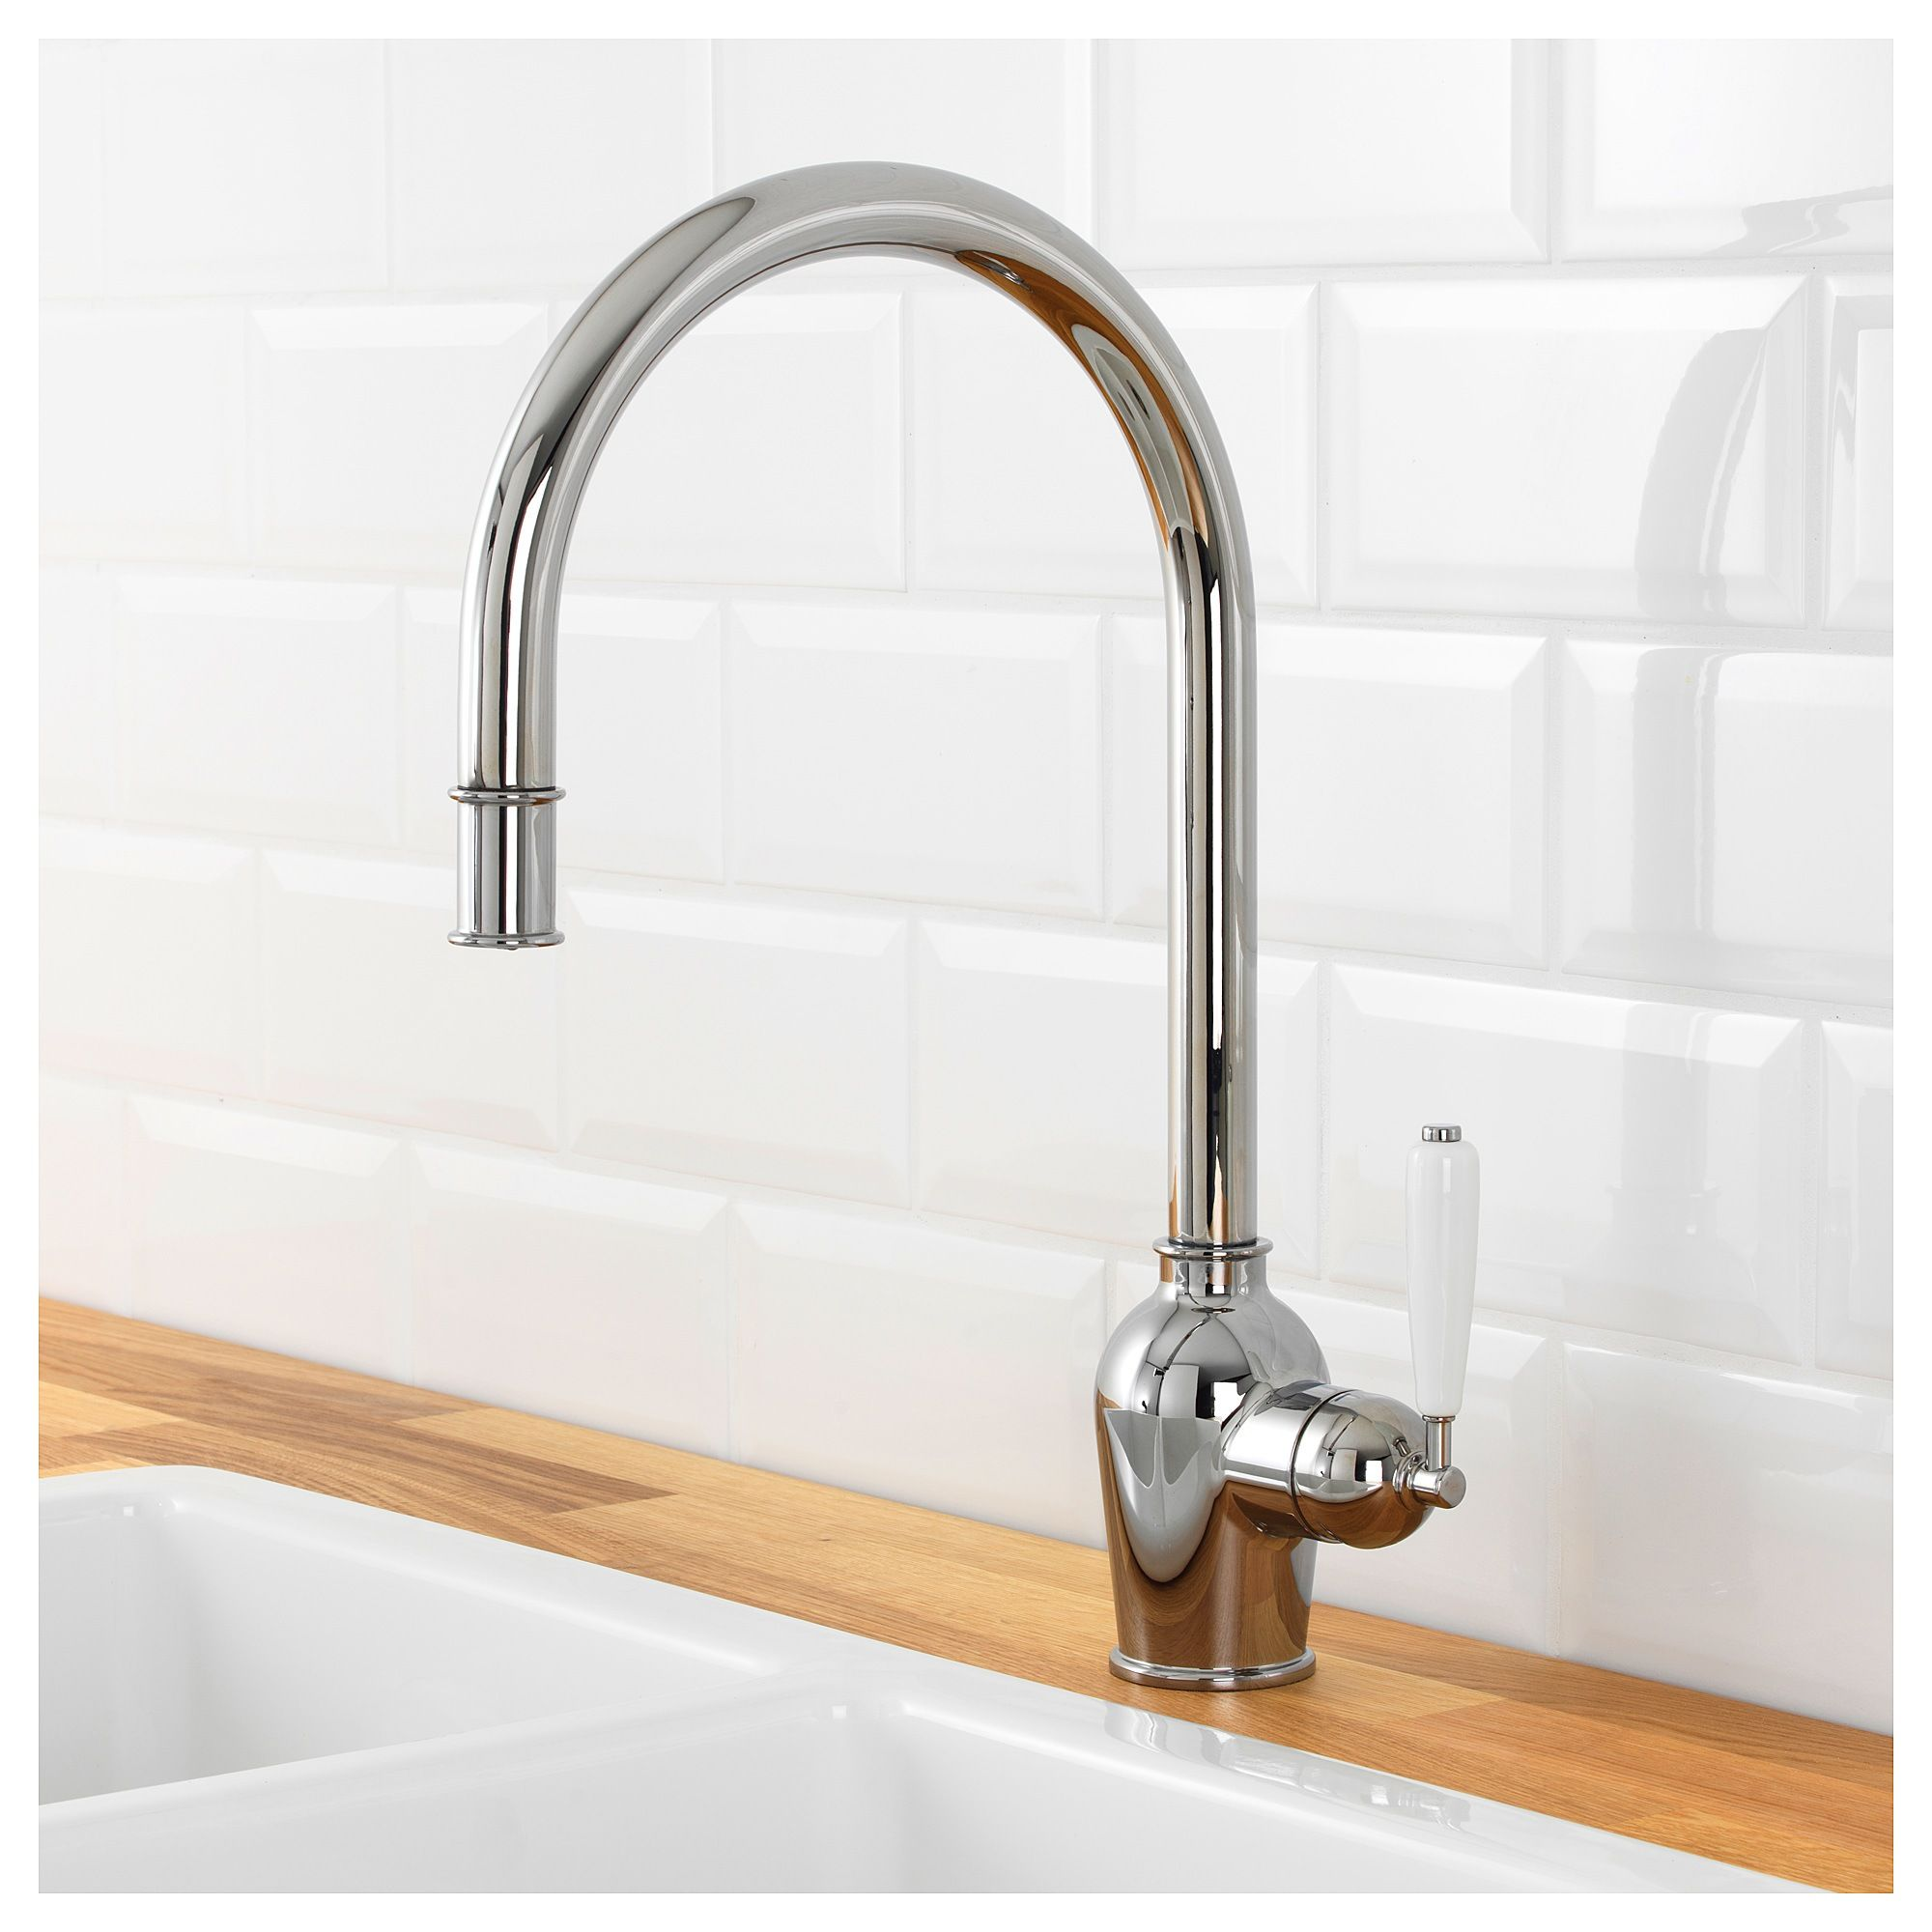 ikea insj n kitchen faucet with pull out spout chrome plated the rh pinterest com